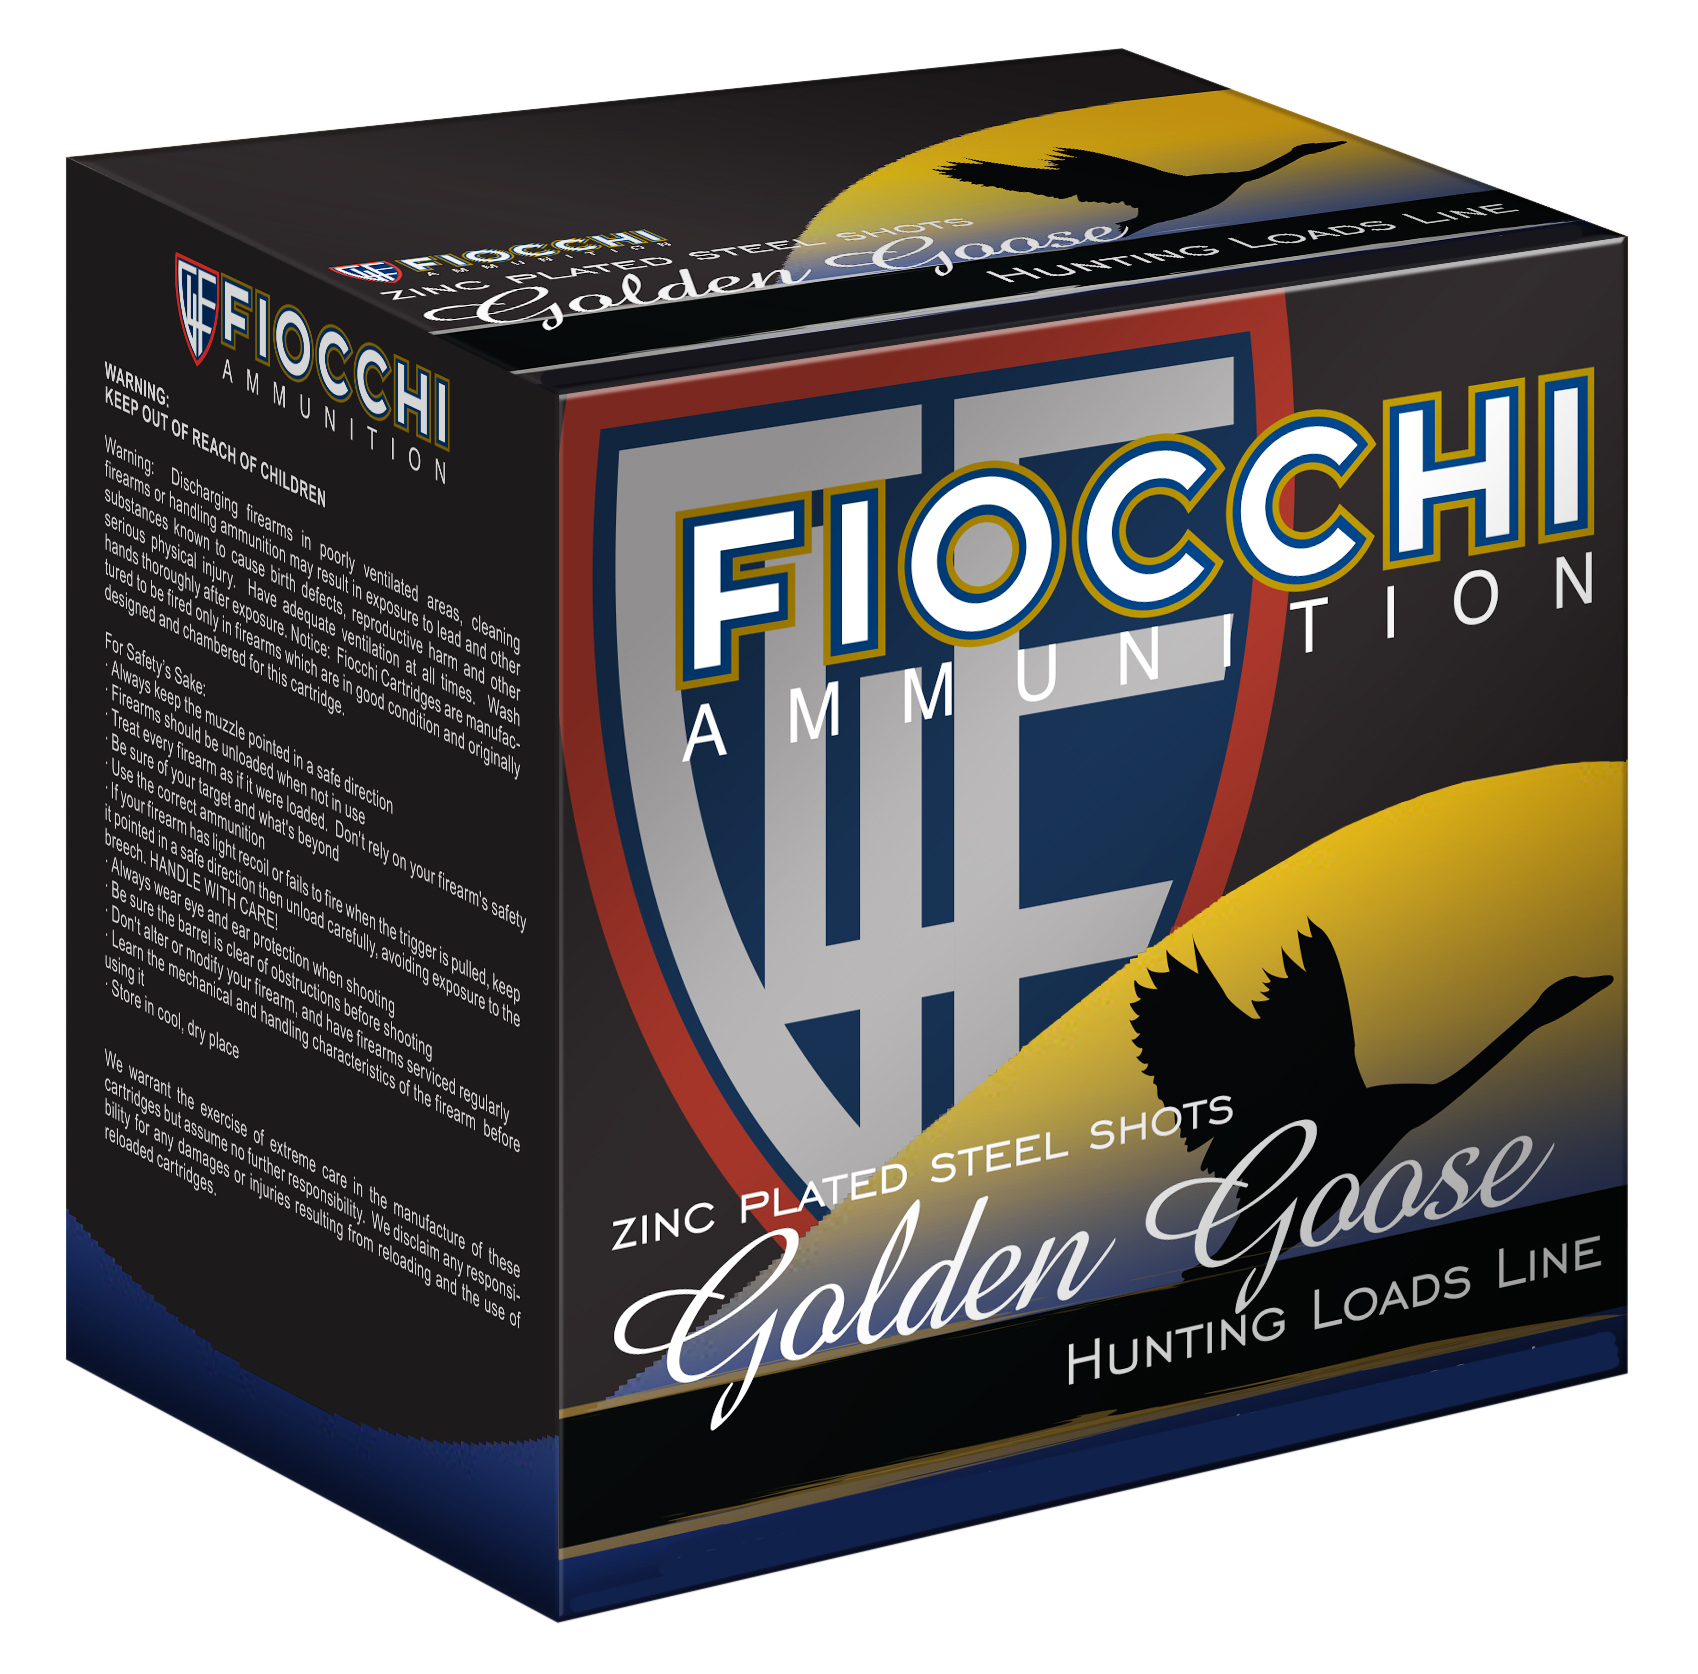 Fiocchi 1235GGBB Steel Waterfowl Shotshell 12 Ga 3.5